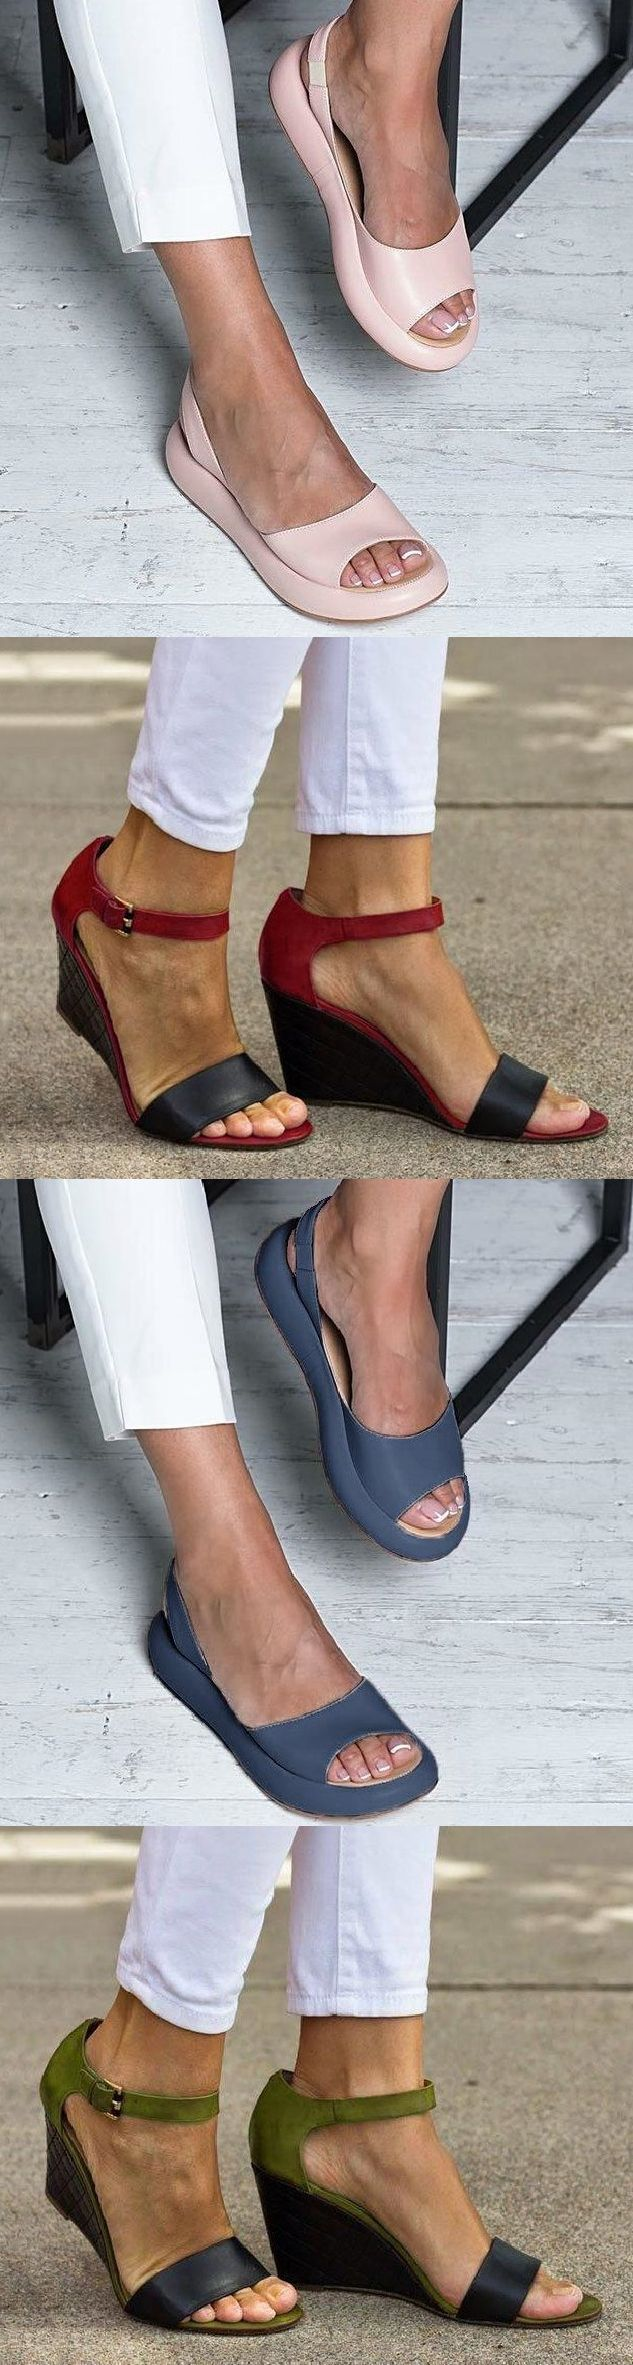 SHOP NOW>>70% OFF Comfy Wedge Fashion Sandals Slippers.Must Have It!